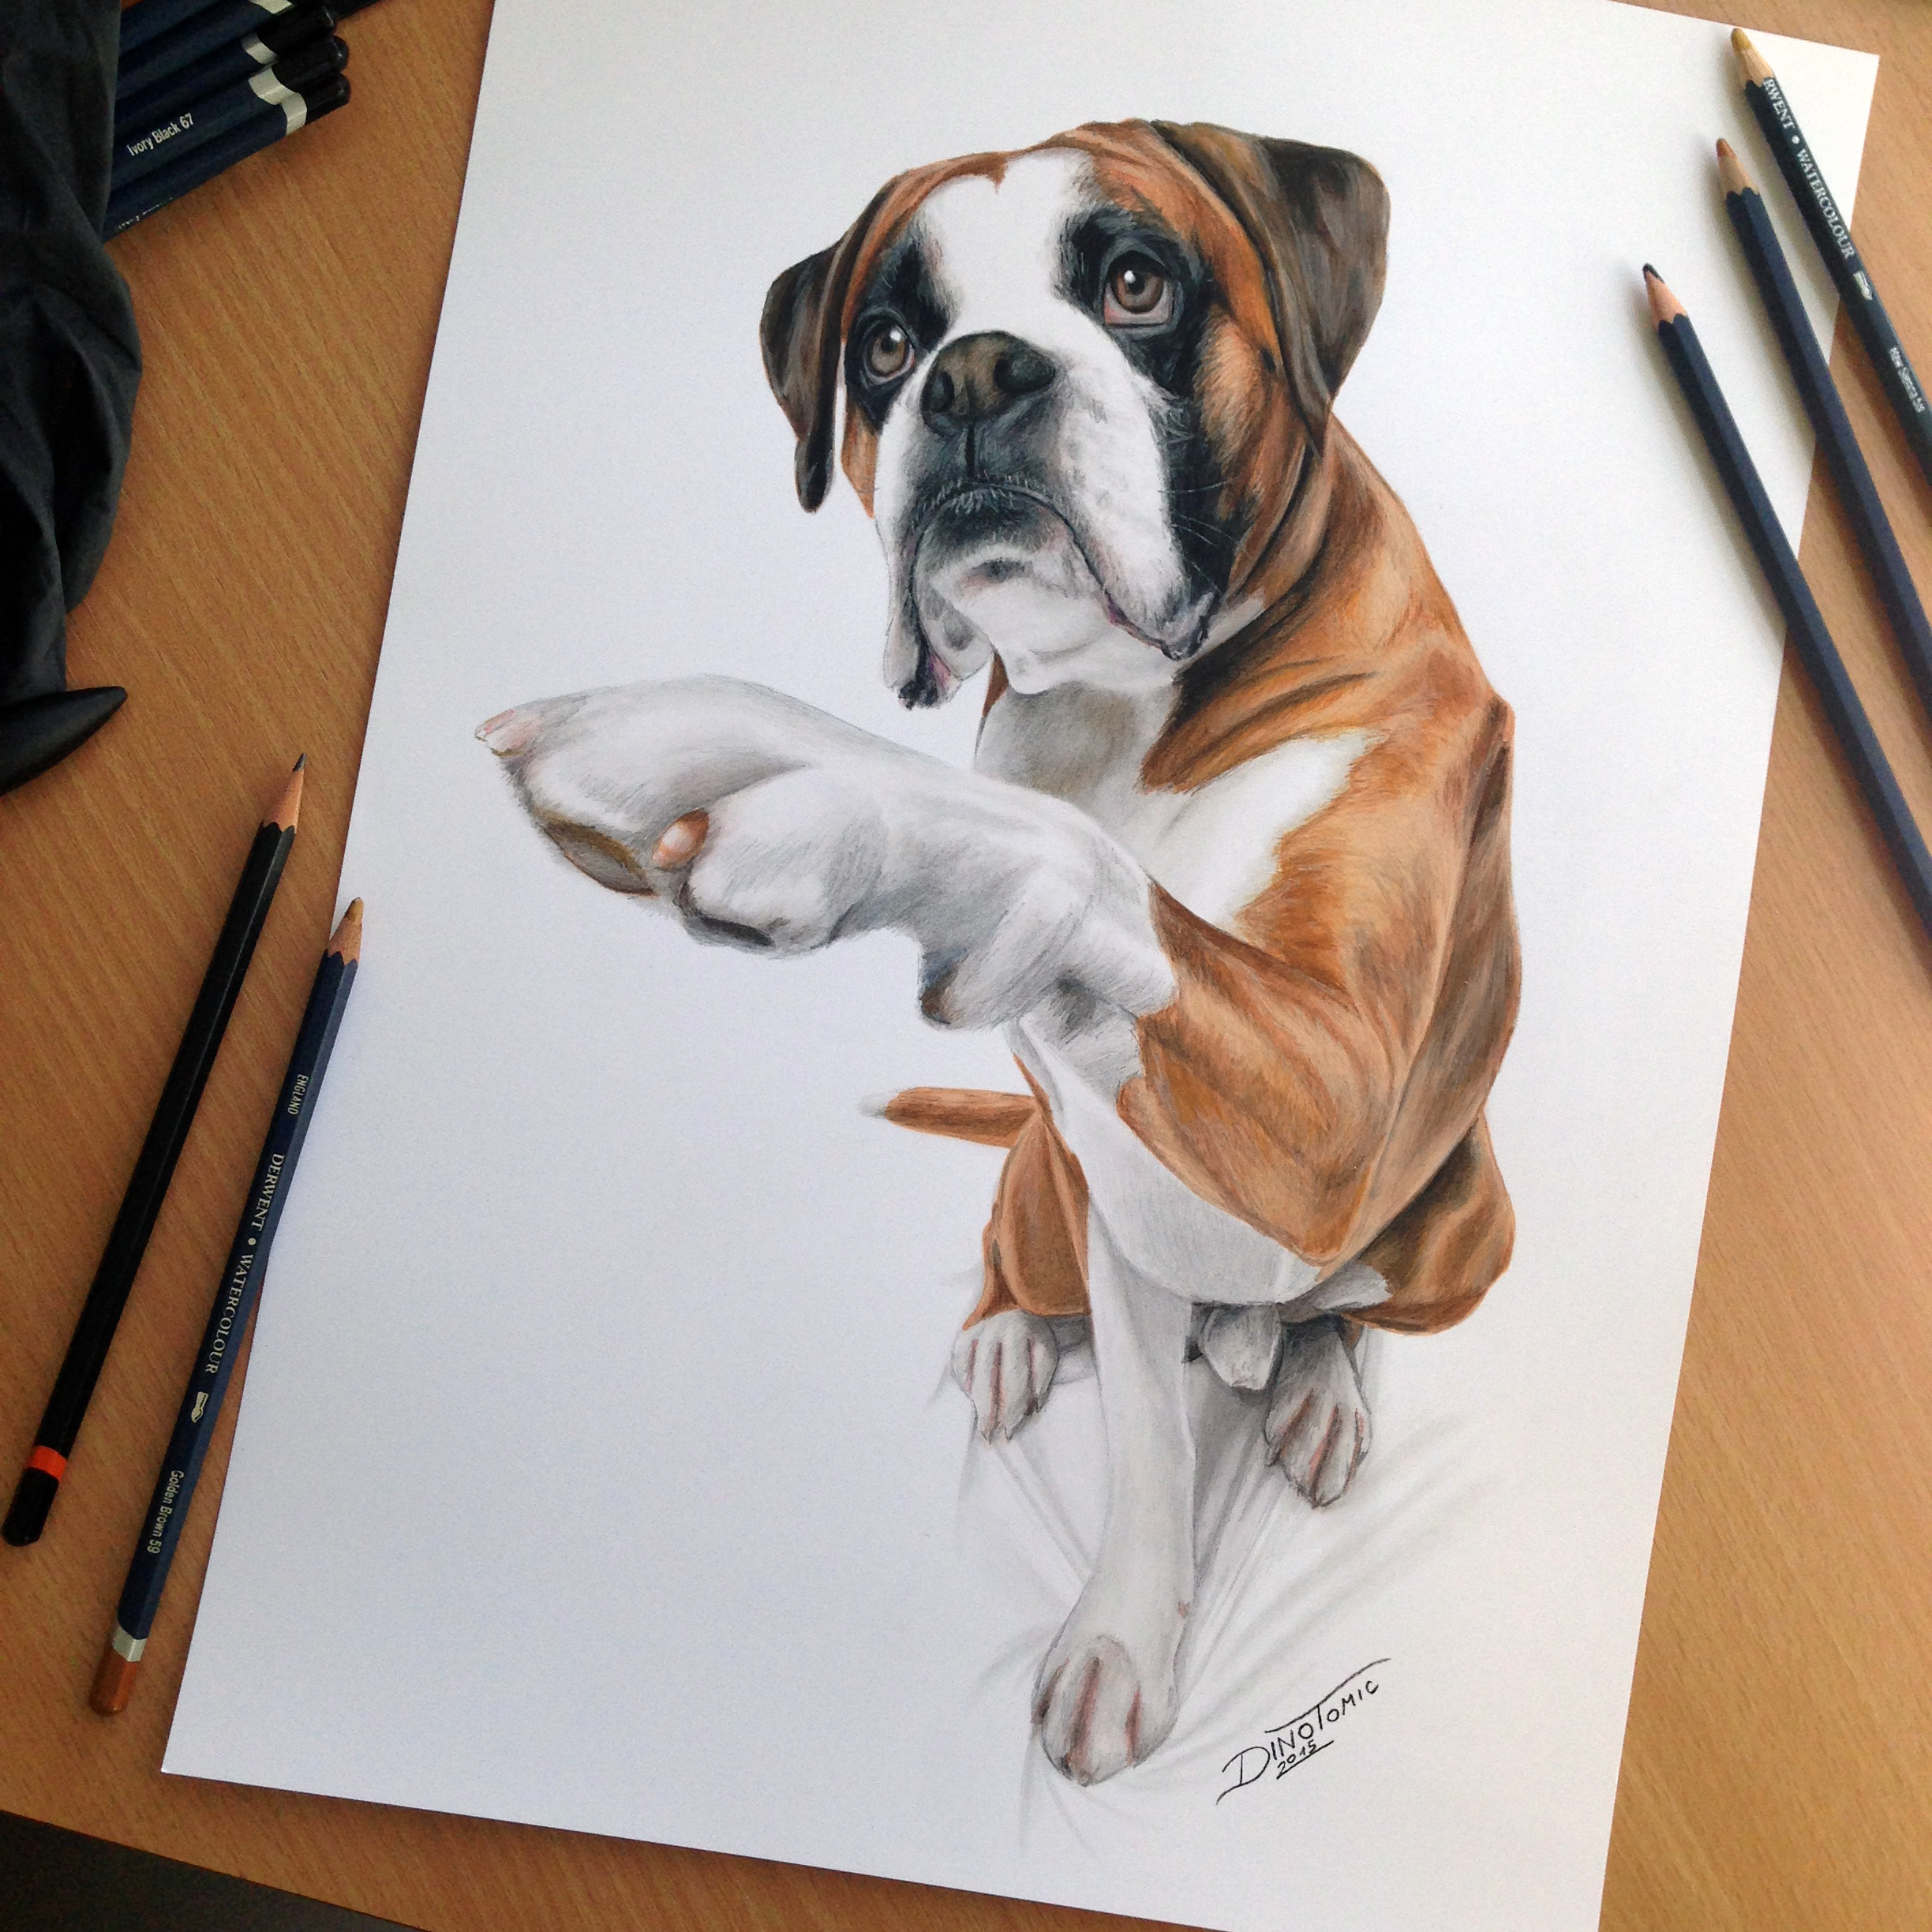 Drawn pug draw a One // skills Dog got